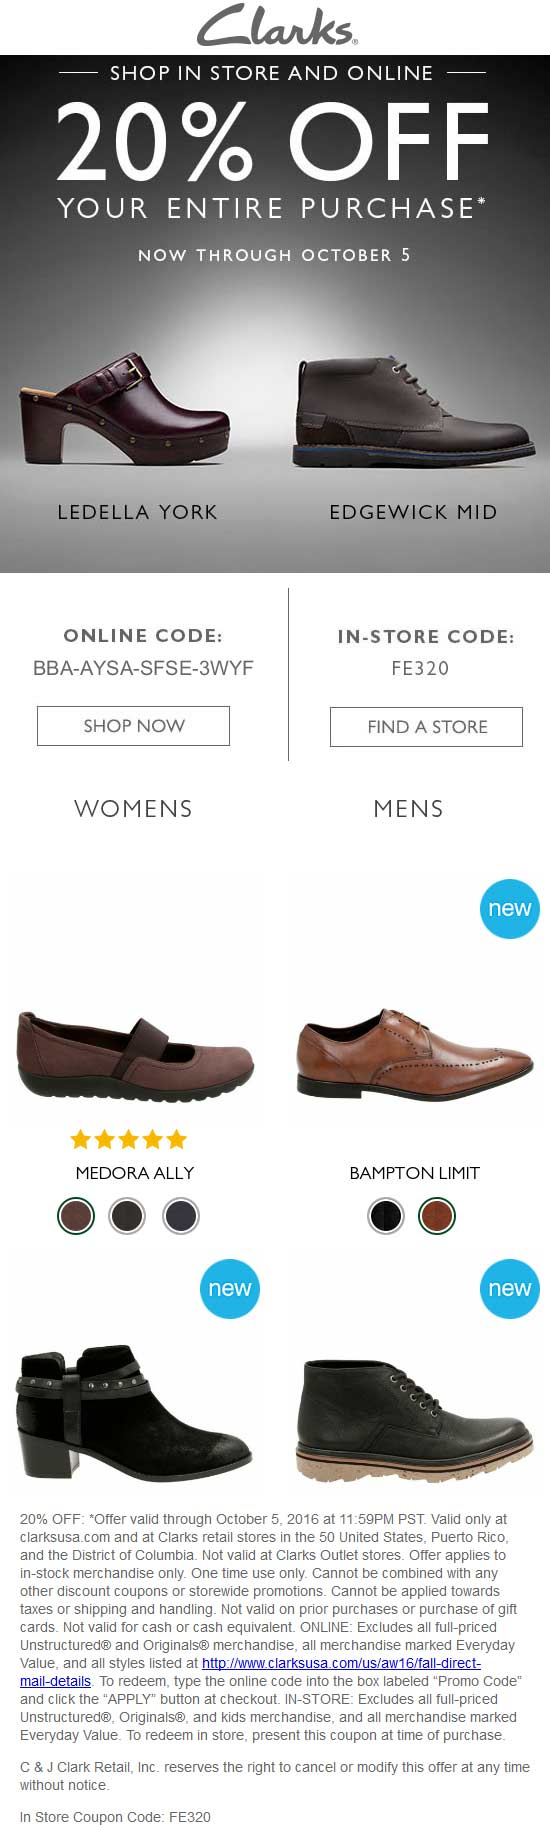 Clarks Coupon April 2017 20% off at Clarks shoes, or online via promo code BBA-AYSA-SFSE-3WYF